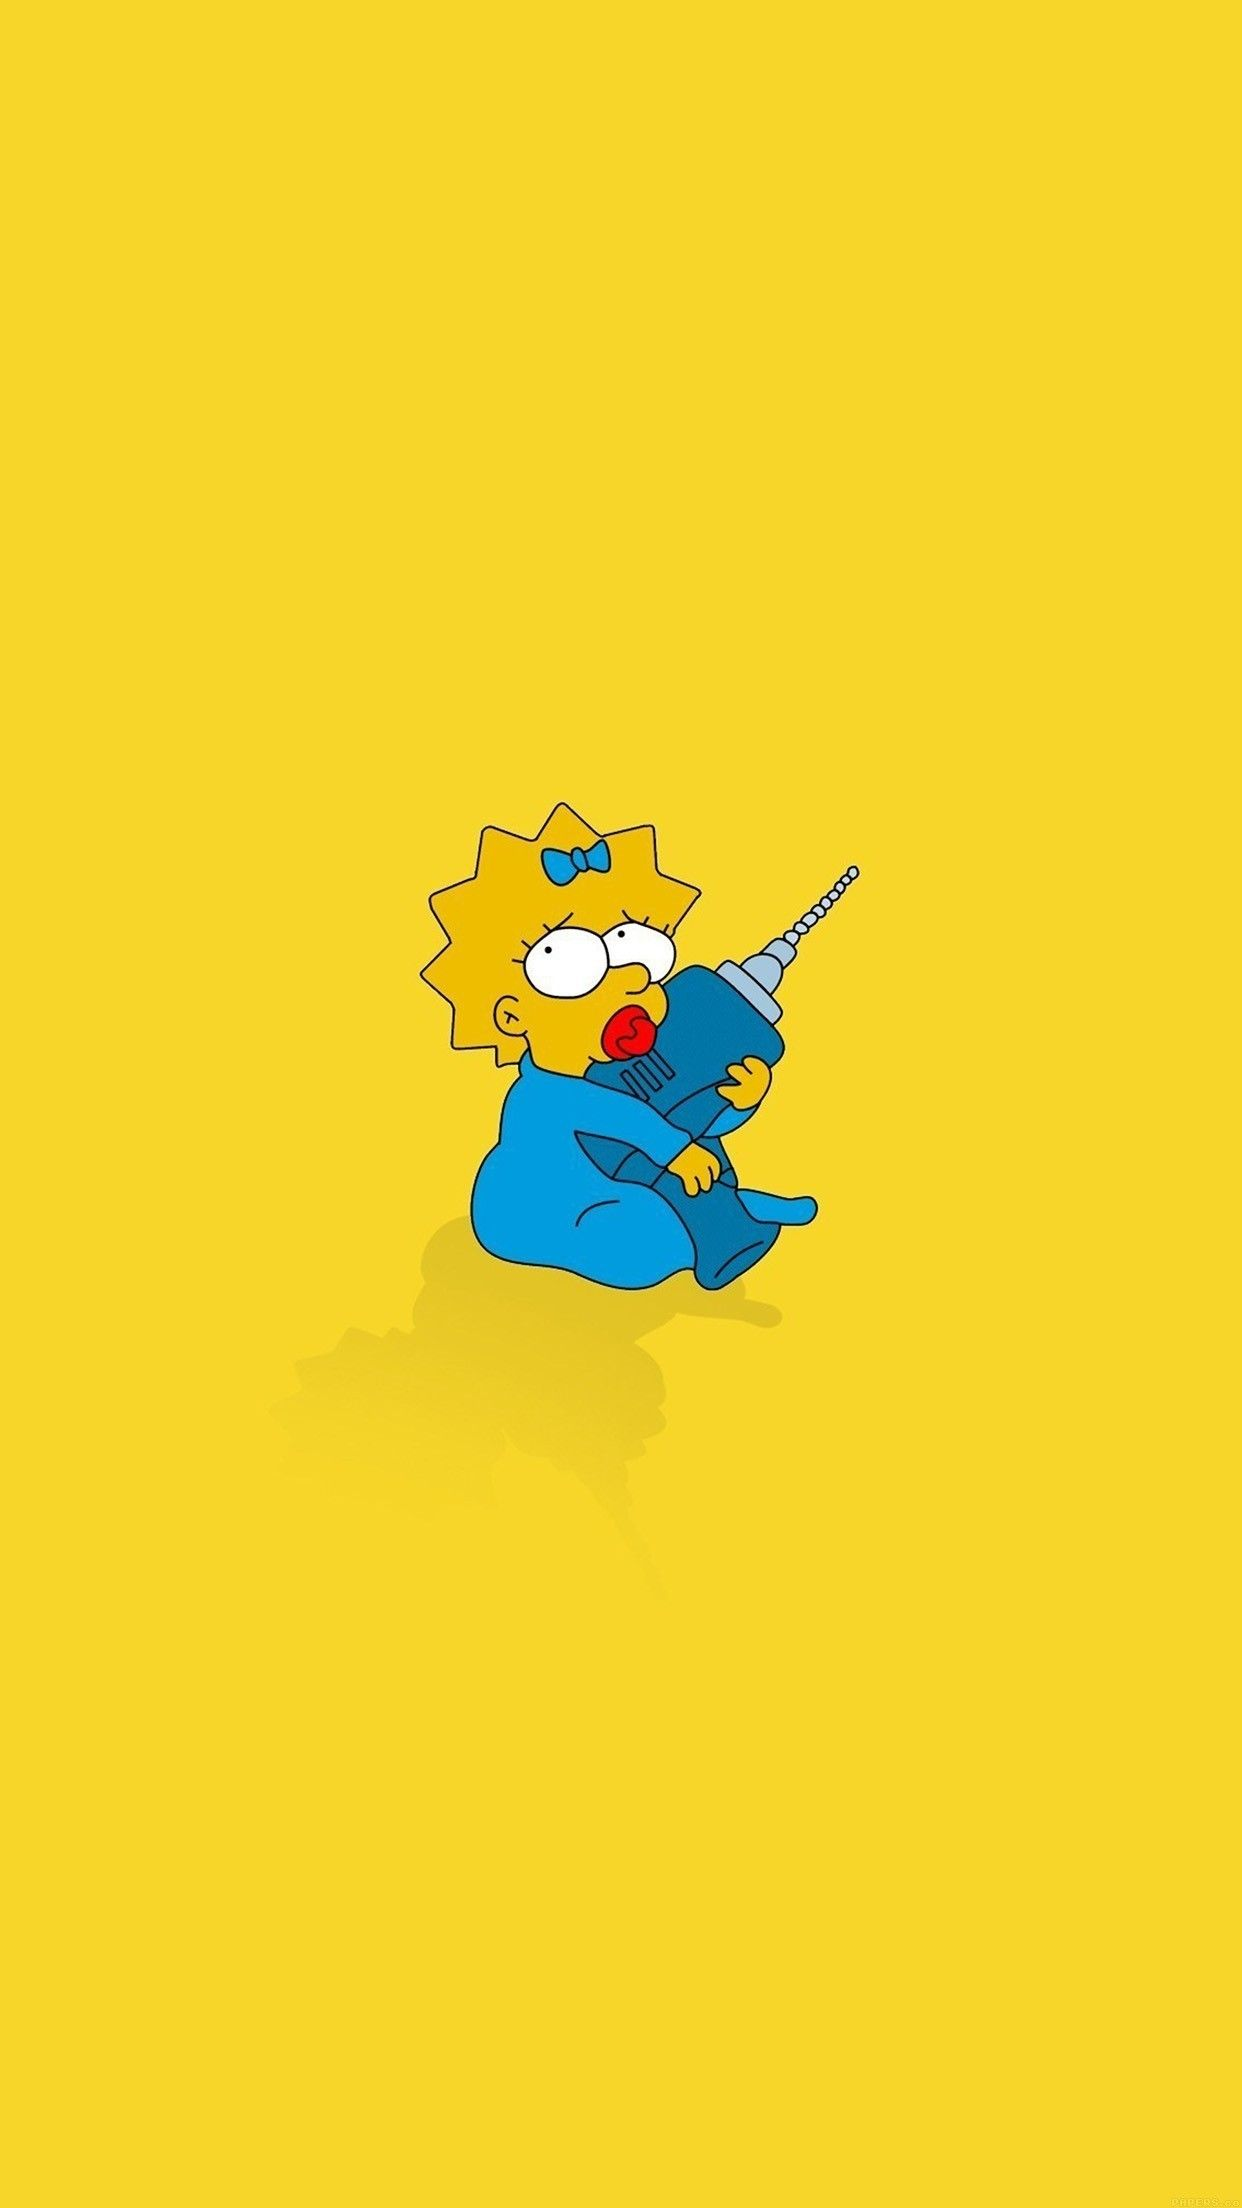 Simpsons Aesthetic Wallpapers On Wallpaperdog